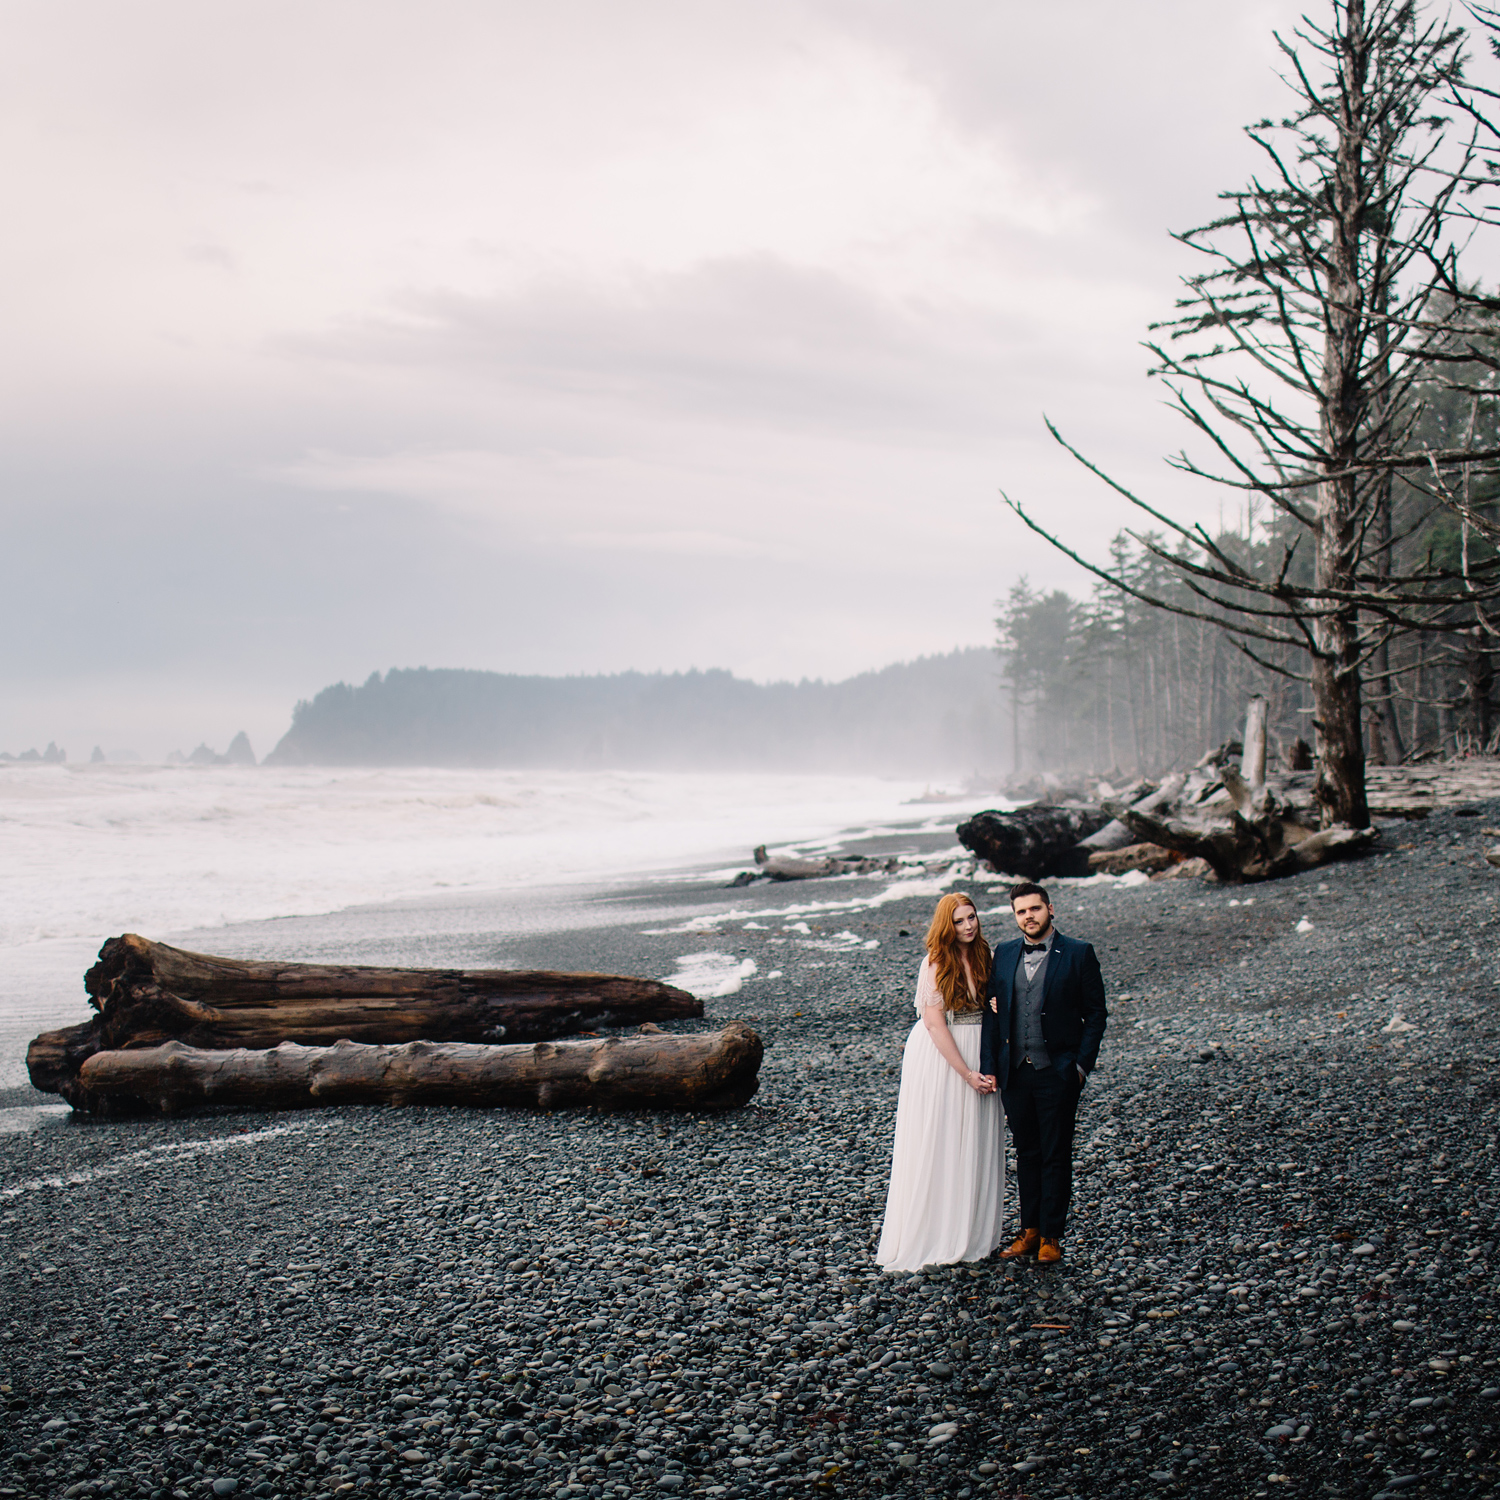 la-push-film-elopement-ryan-flynn-photography-0028.JPG